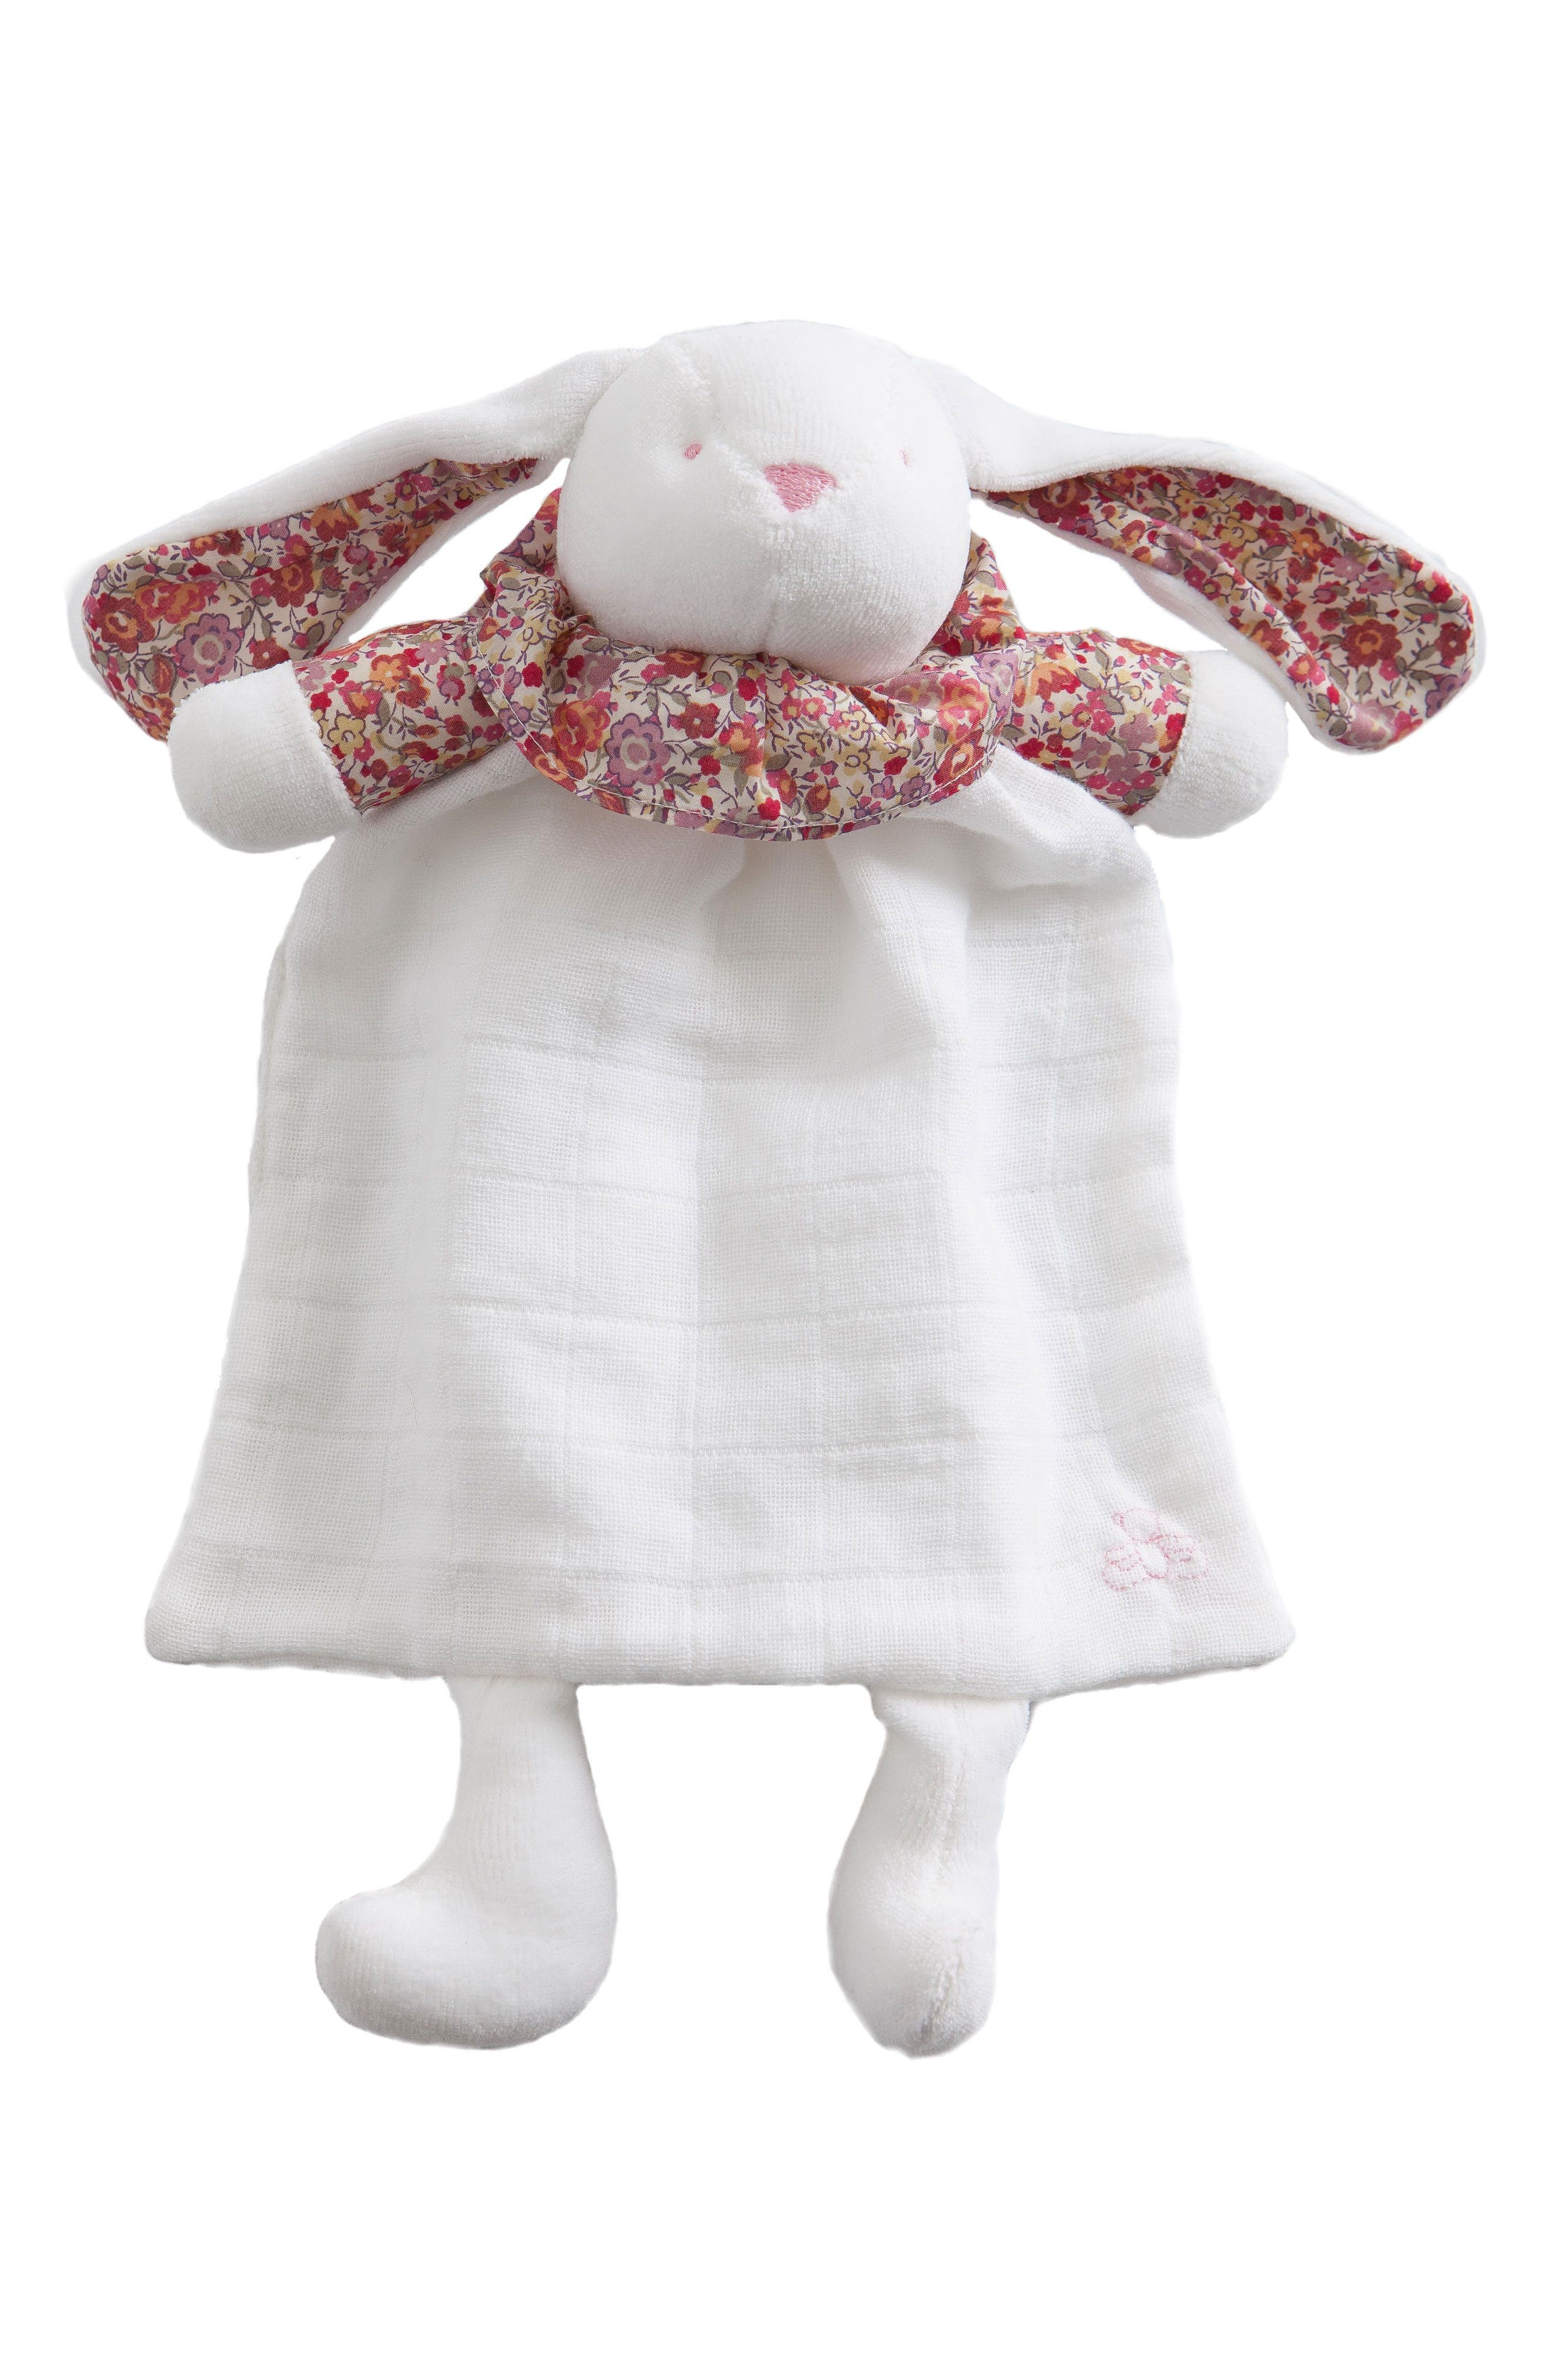 Alternate Image 1 Selected - Pamplemousse Peluches x Liberty of London Rabbit Lovey Toy